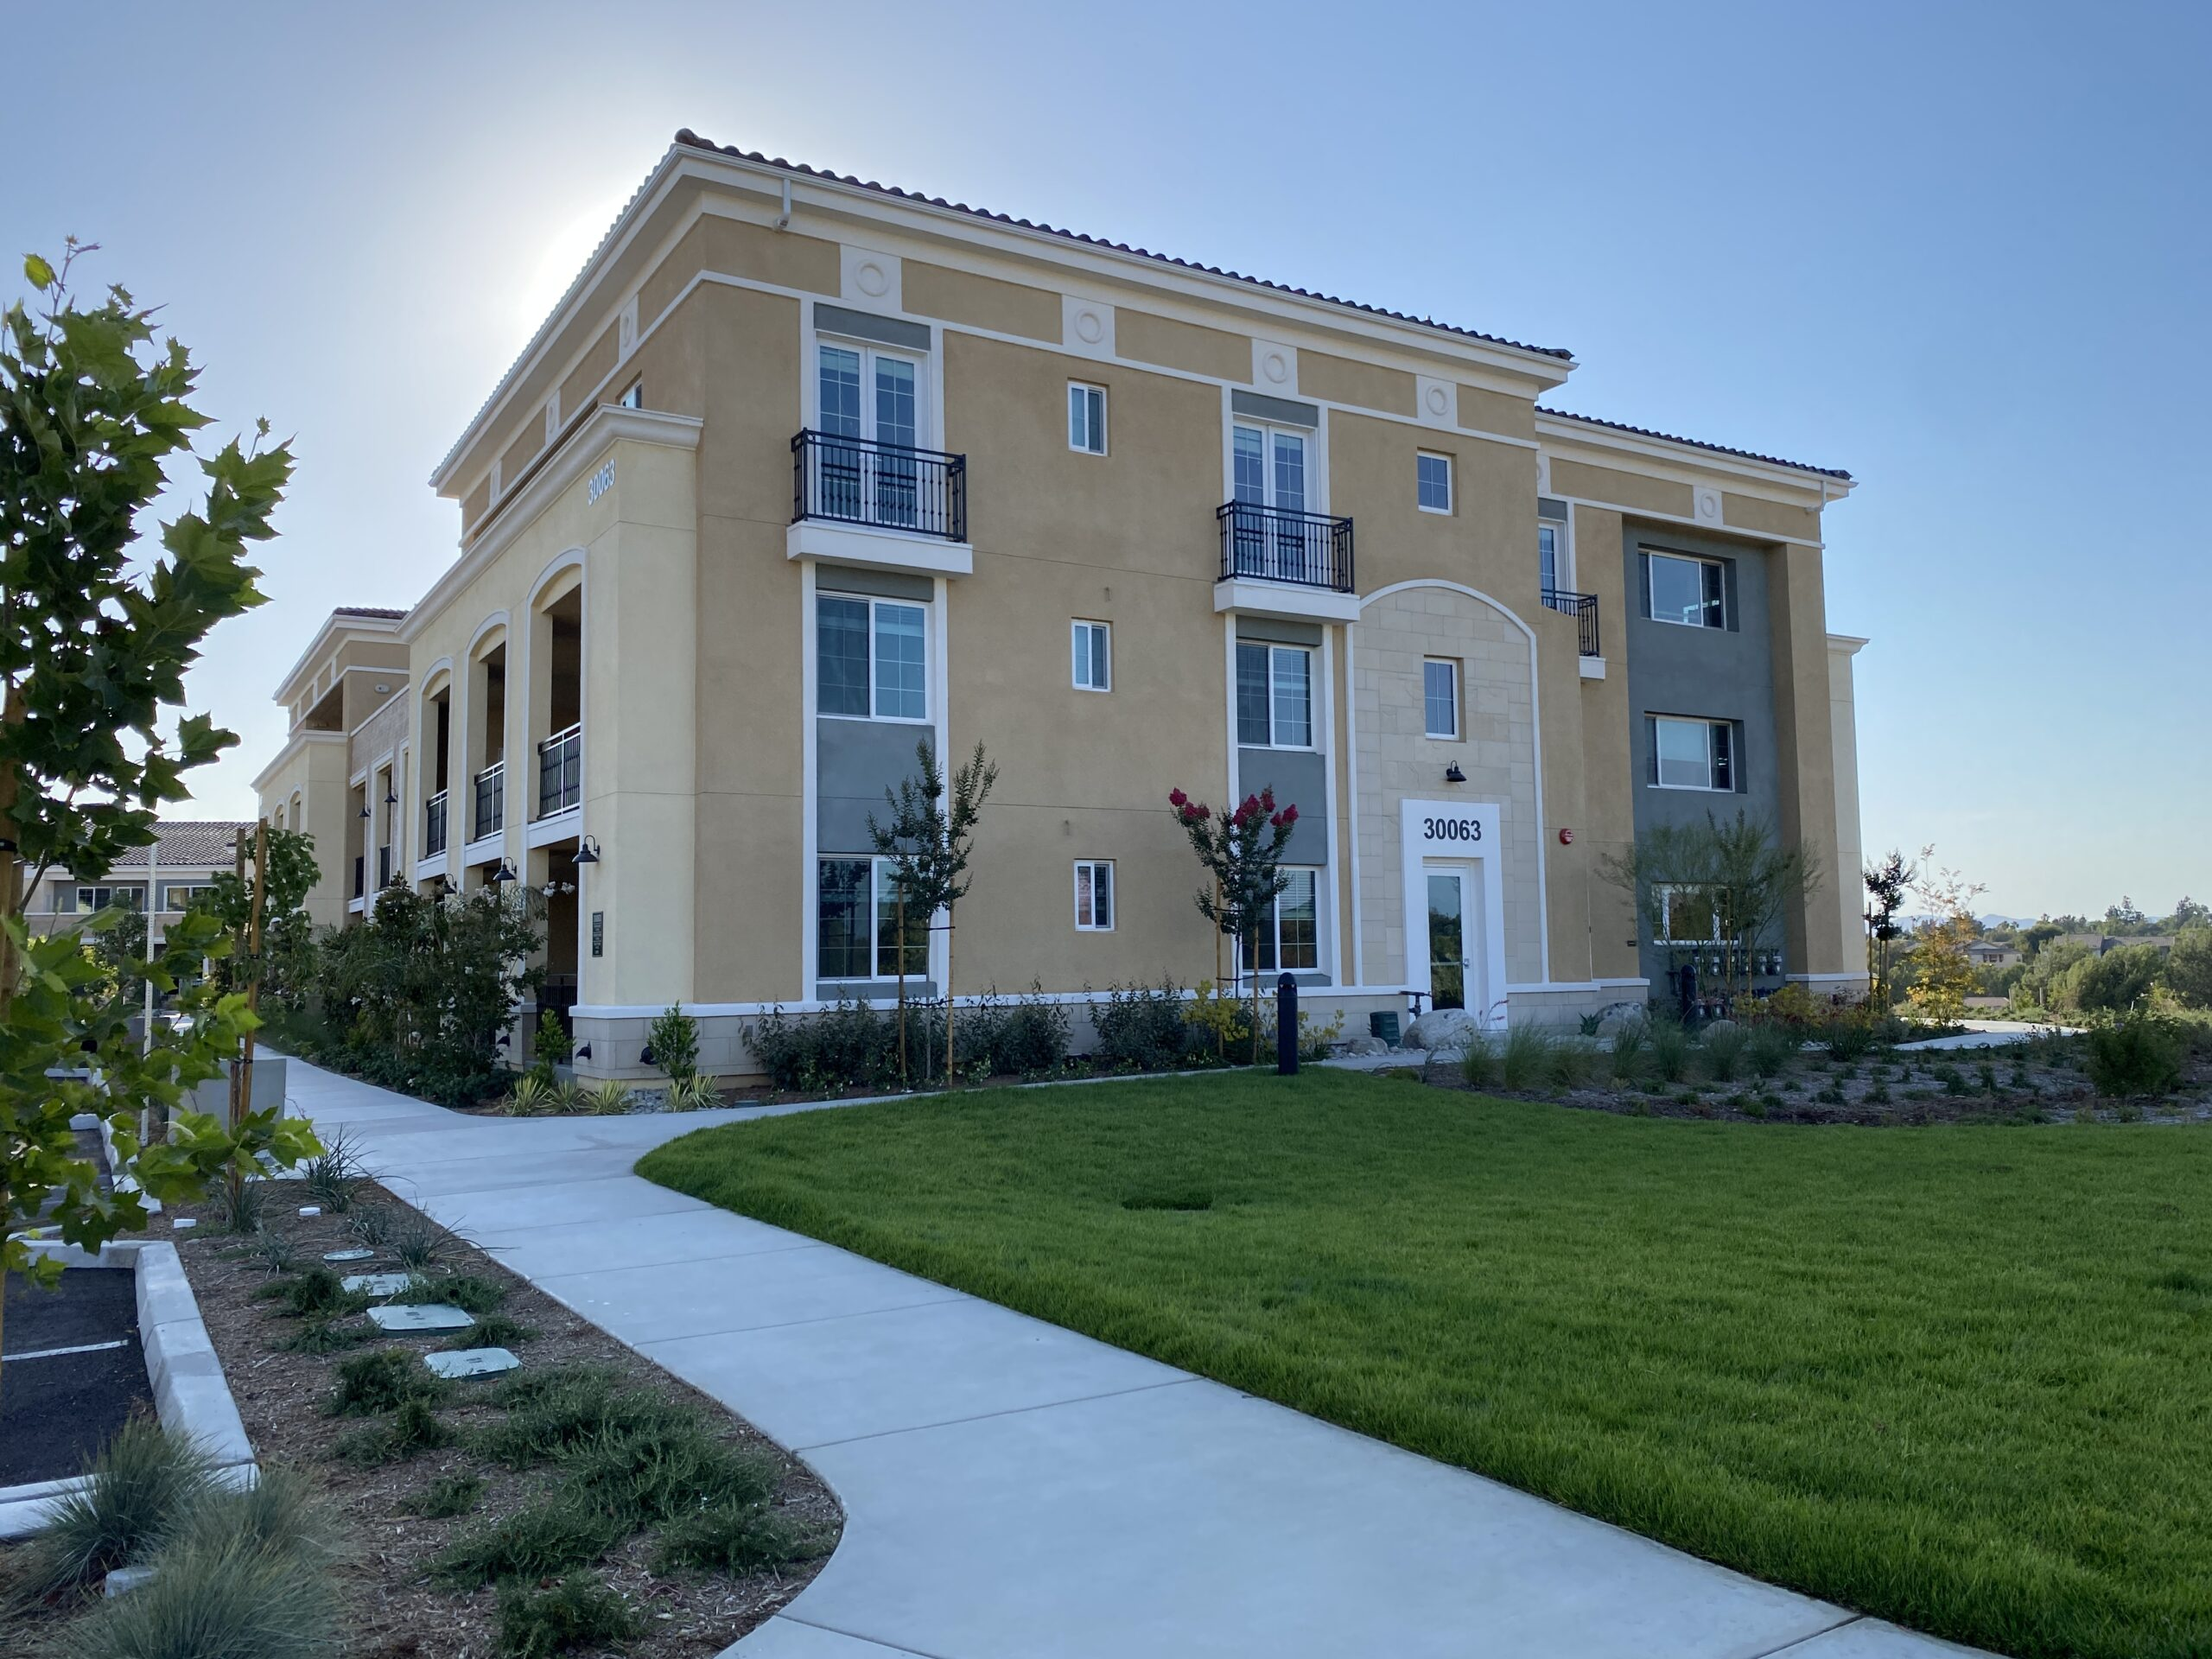 Pacific West Development Completes Leasing Office, Buildings 1 and 2 at Rendezvous Phase 1